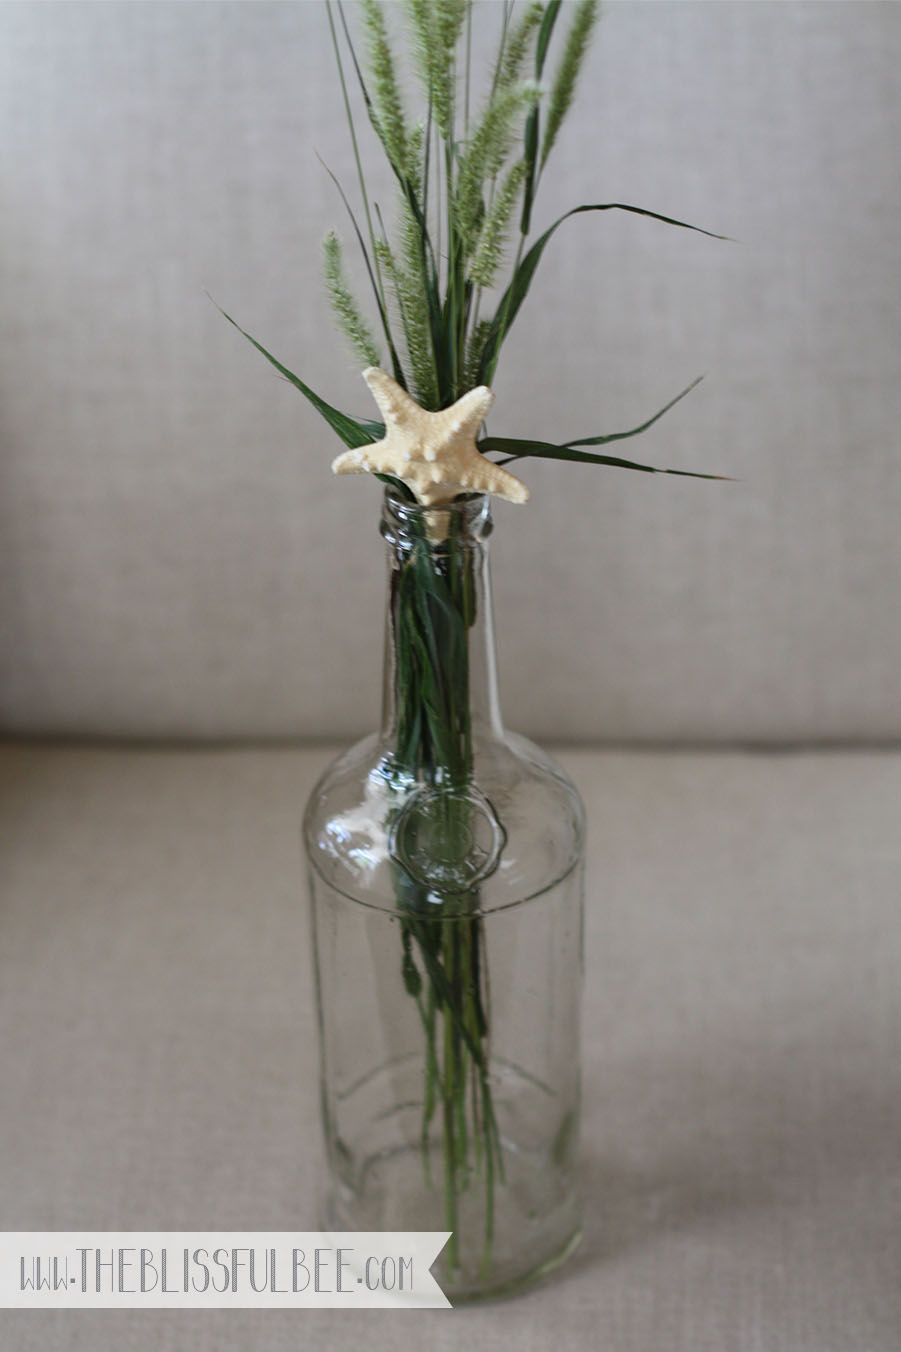 Vertical_WhiskeyVase